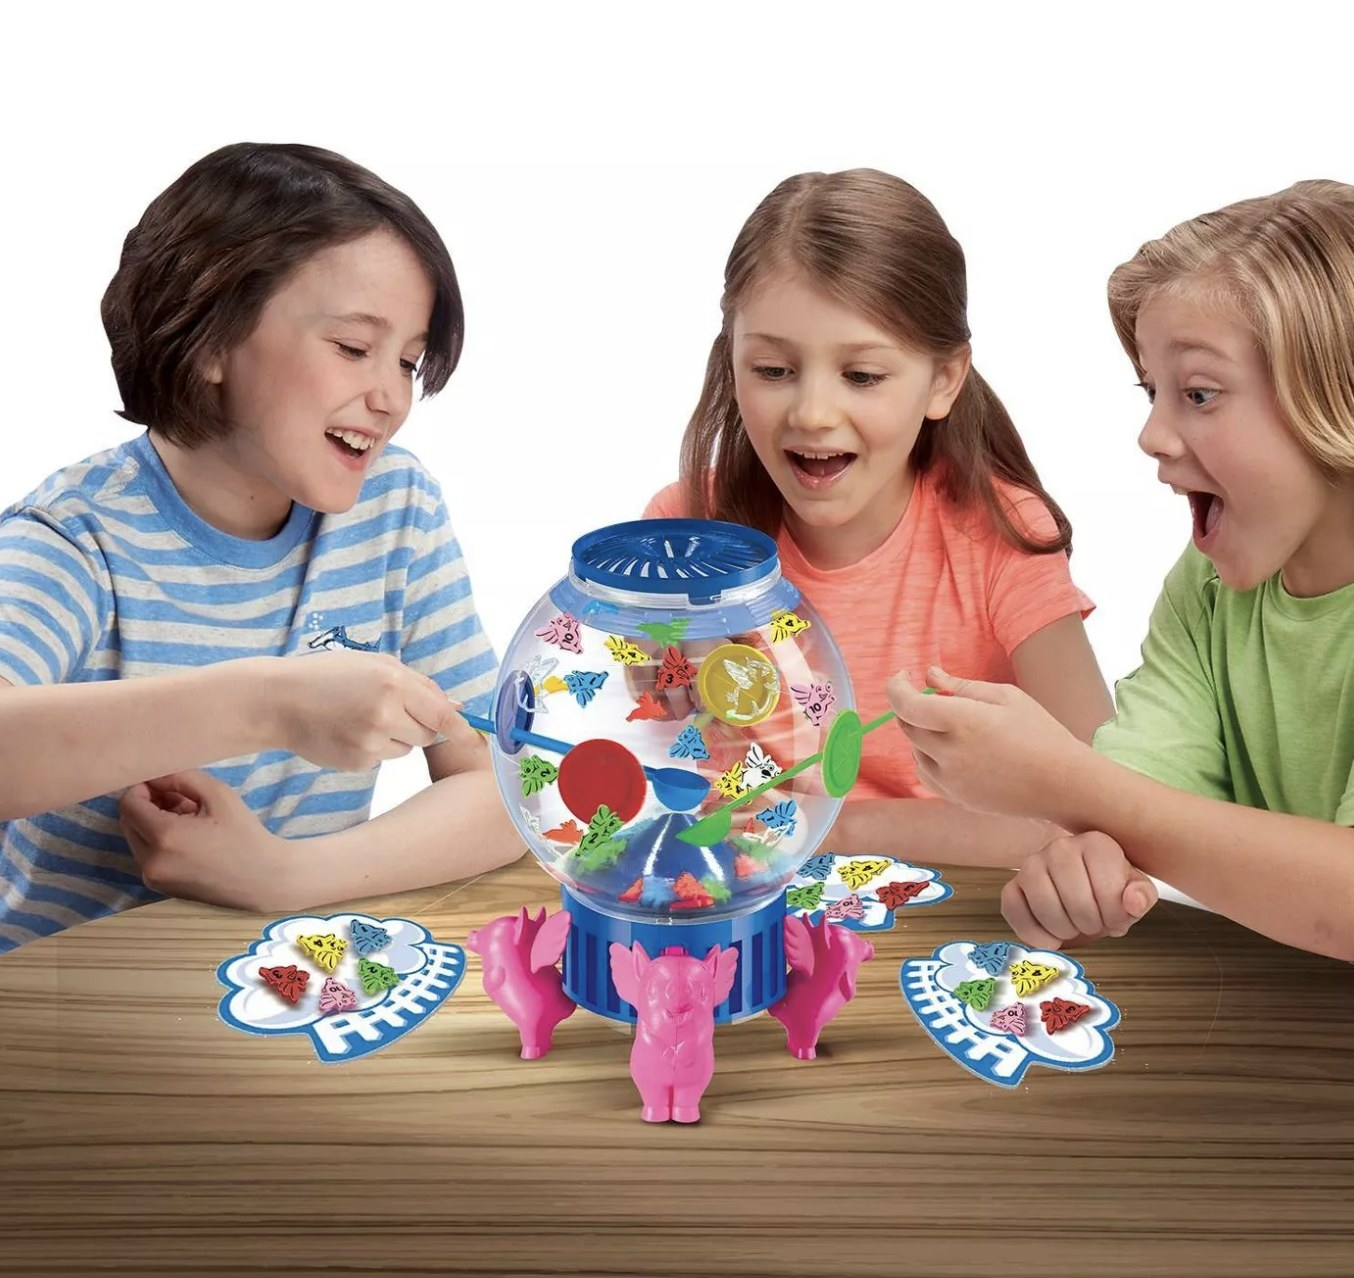 Three young people playing the Flying Pigs game